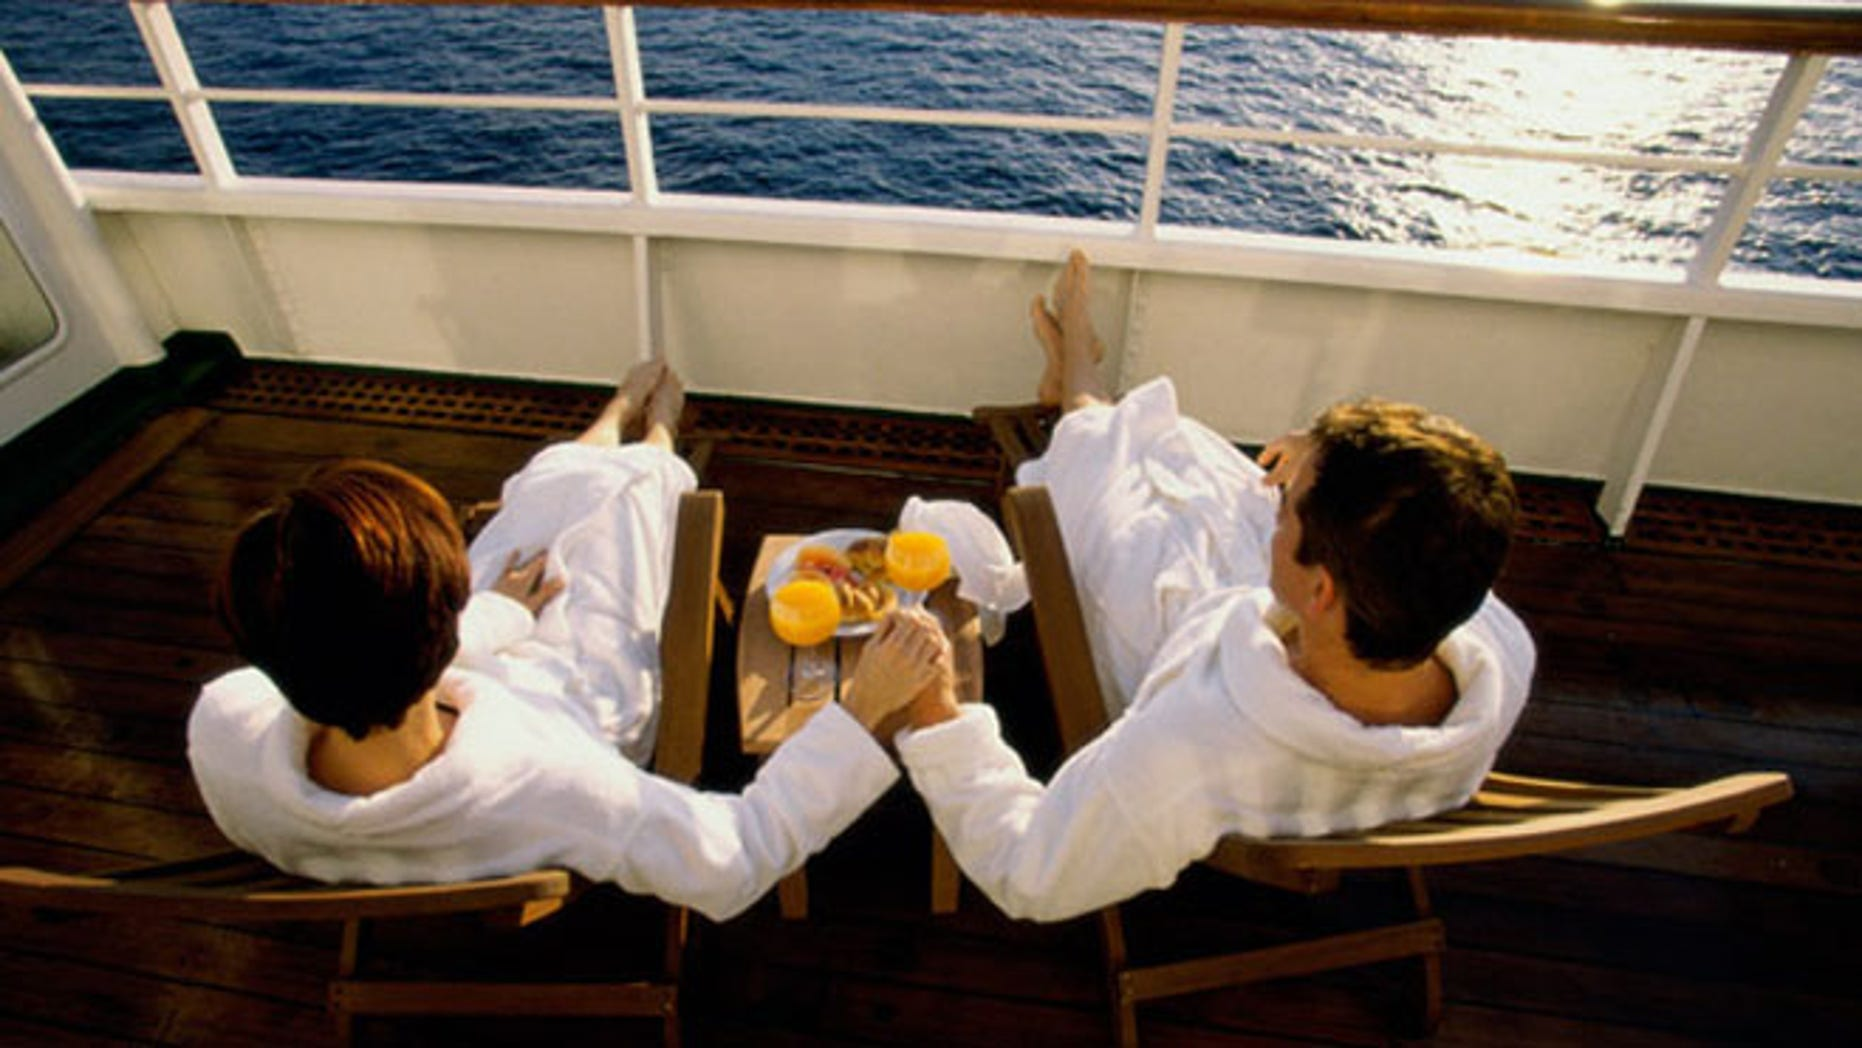 Research shows that one half of affluent travelers are interested in taking a cruise vacation during the next two years.